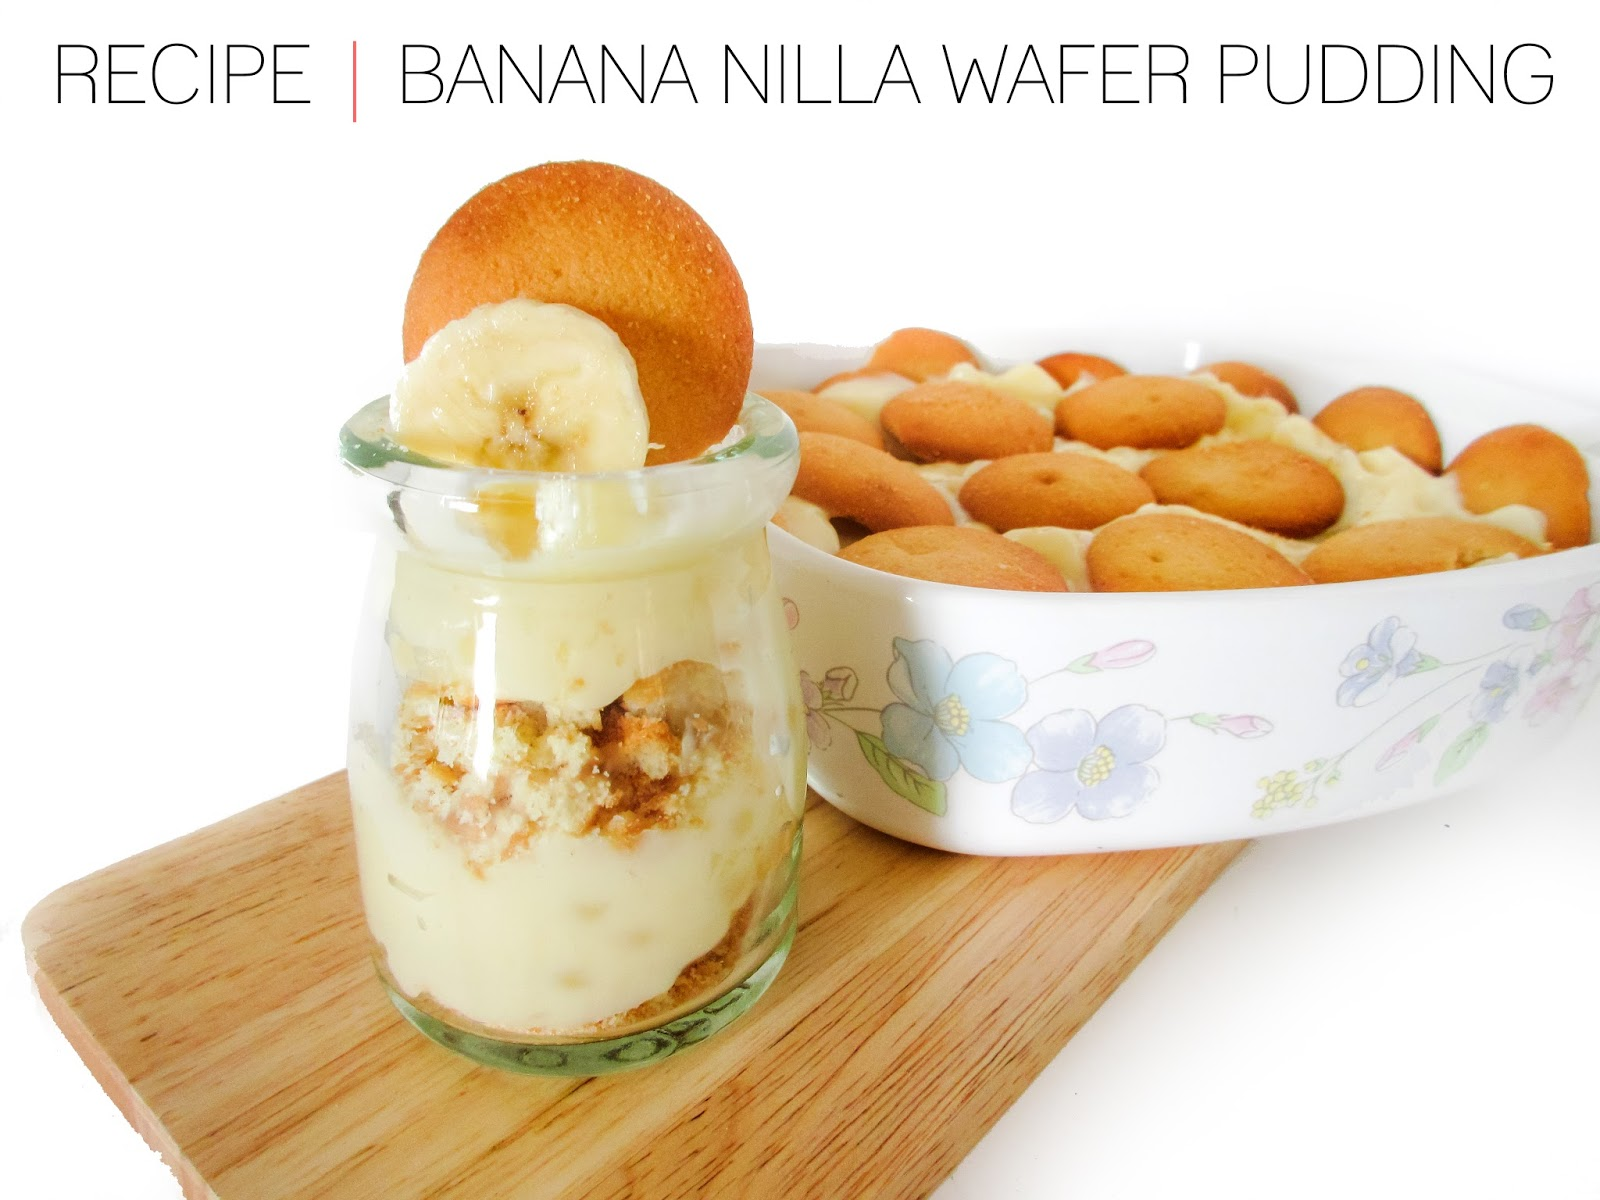 Nilla Wafer Banana Pudding Recipes — Dishmaps